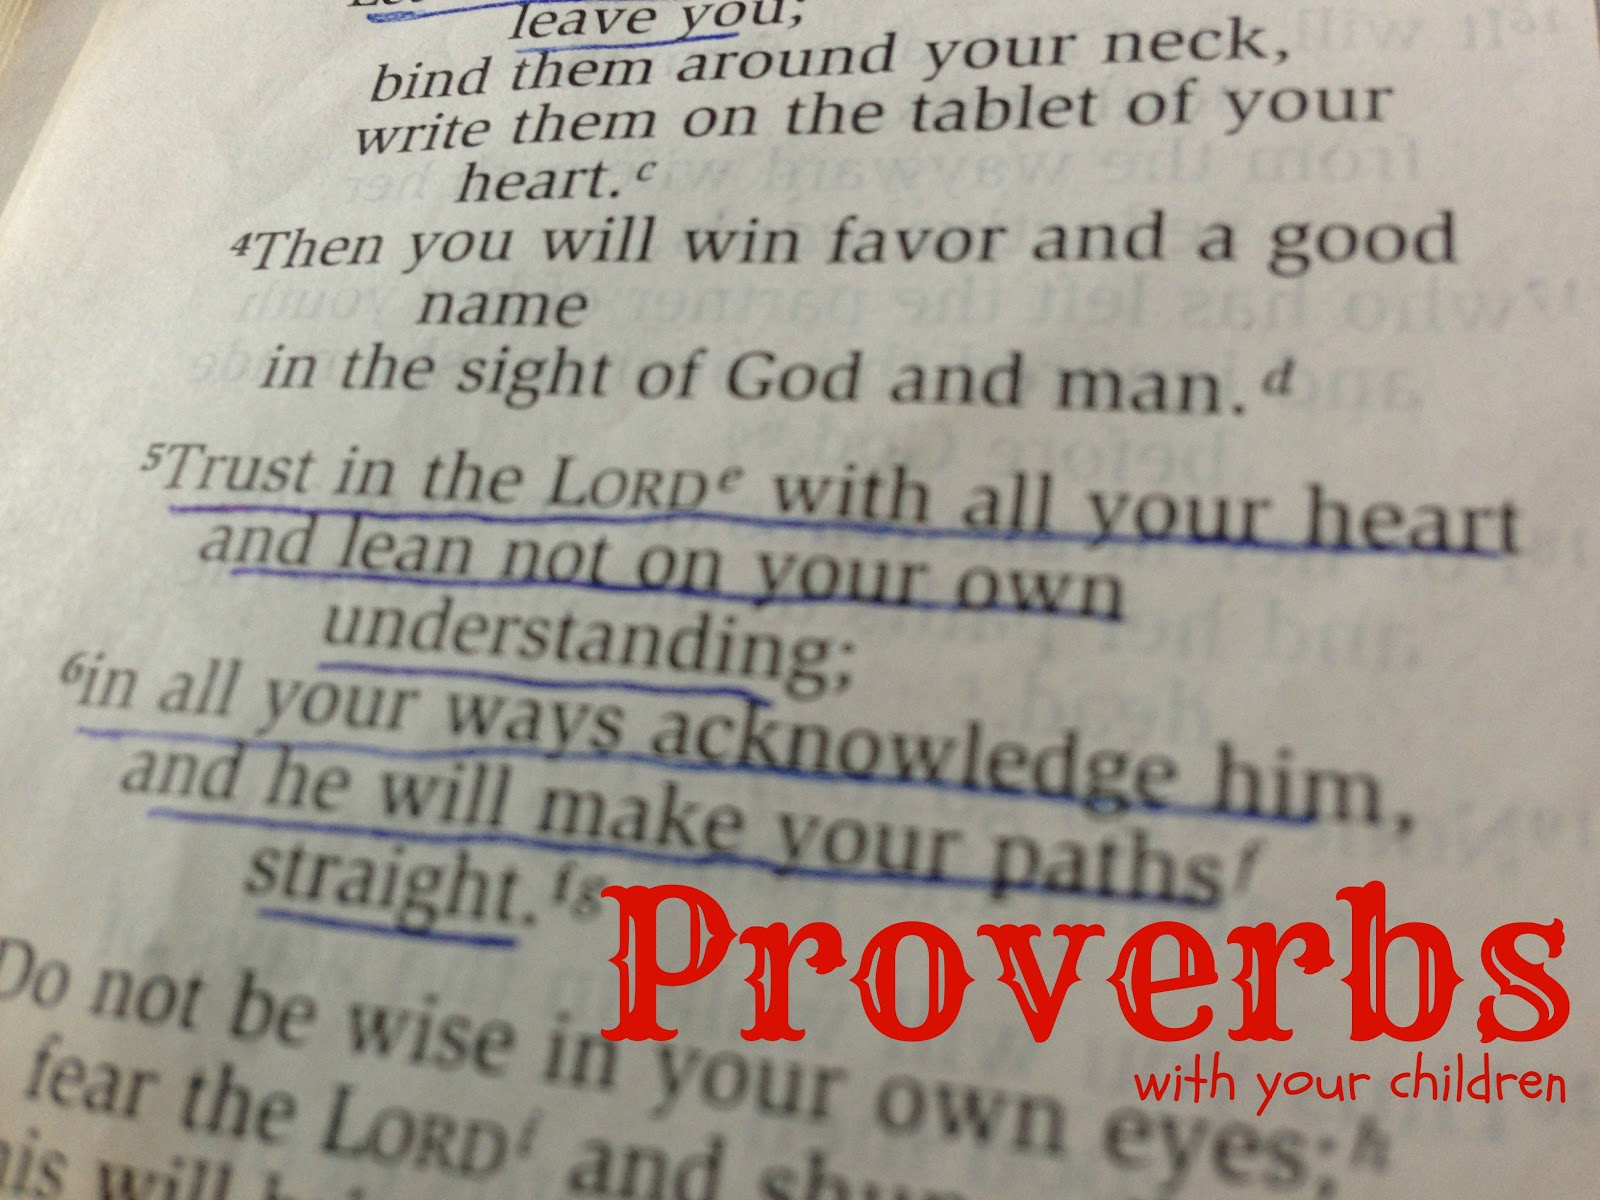 Studying proverbs with my kids his mercy is new studying proverbs with my kids geenschuldenfo Choice Image